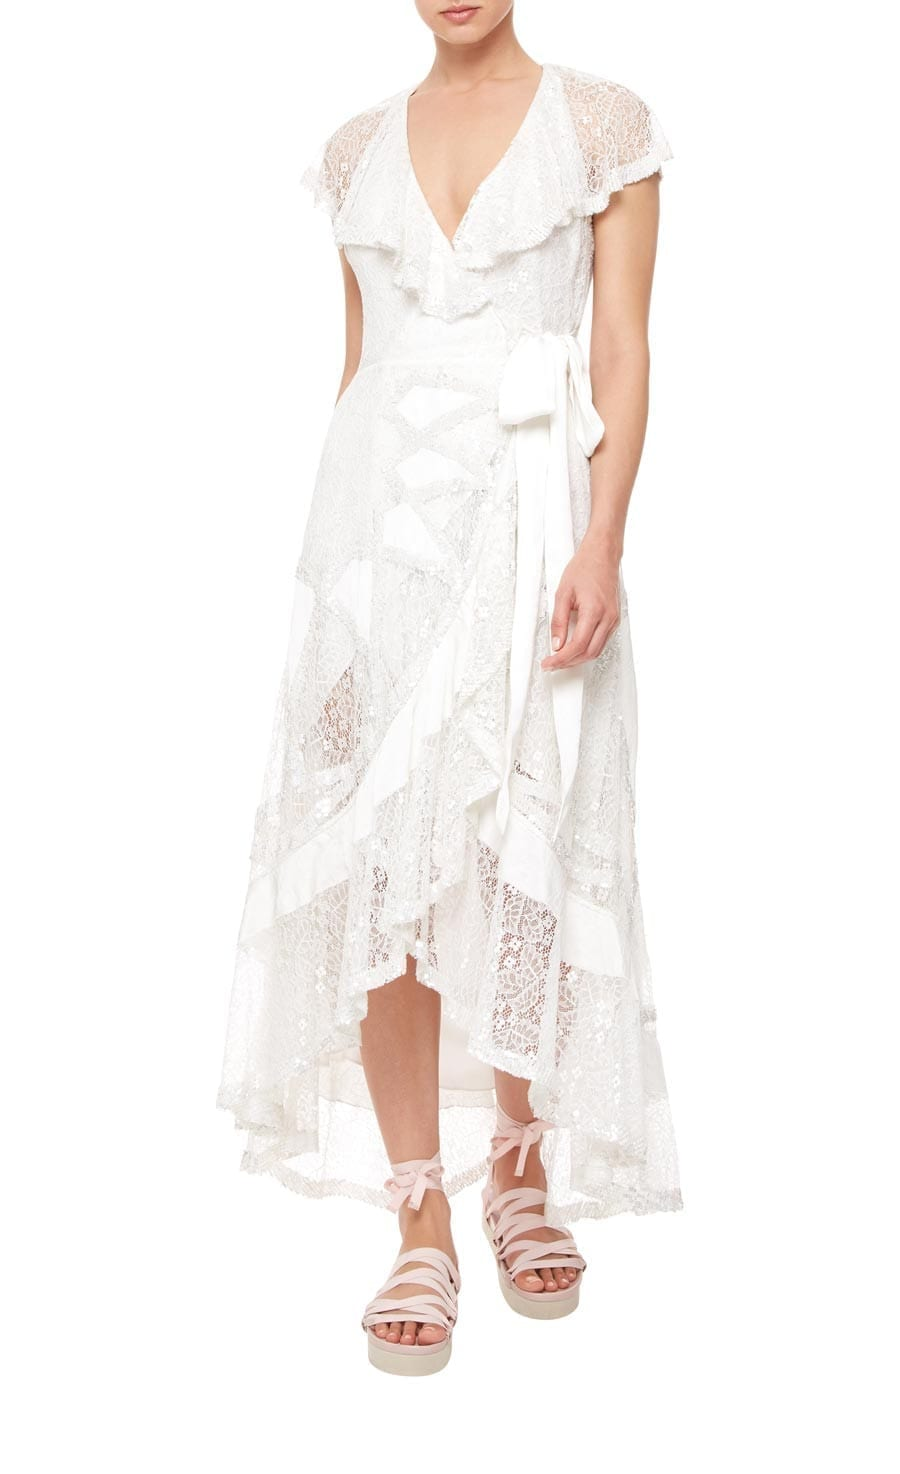 TEMPERLEY LONDON Boulevard Ruffle White Dress